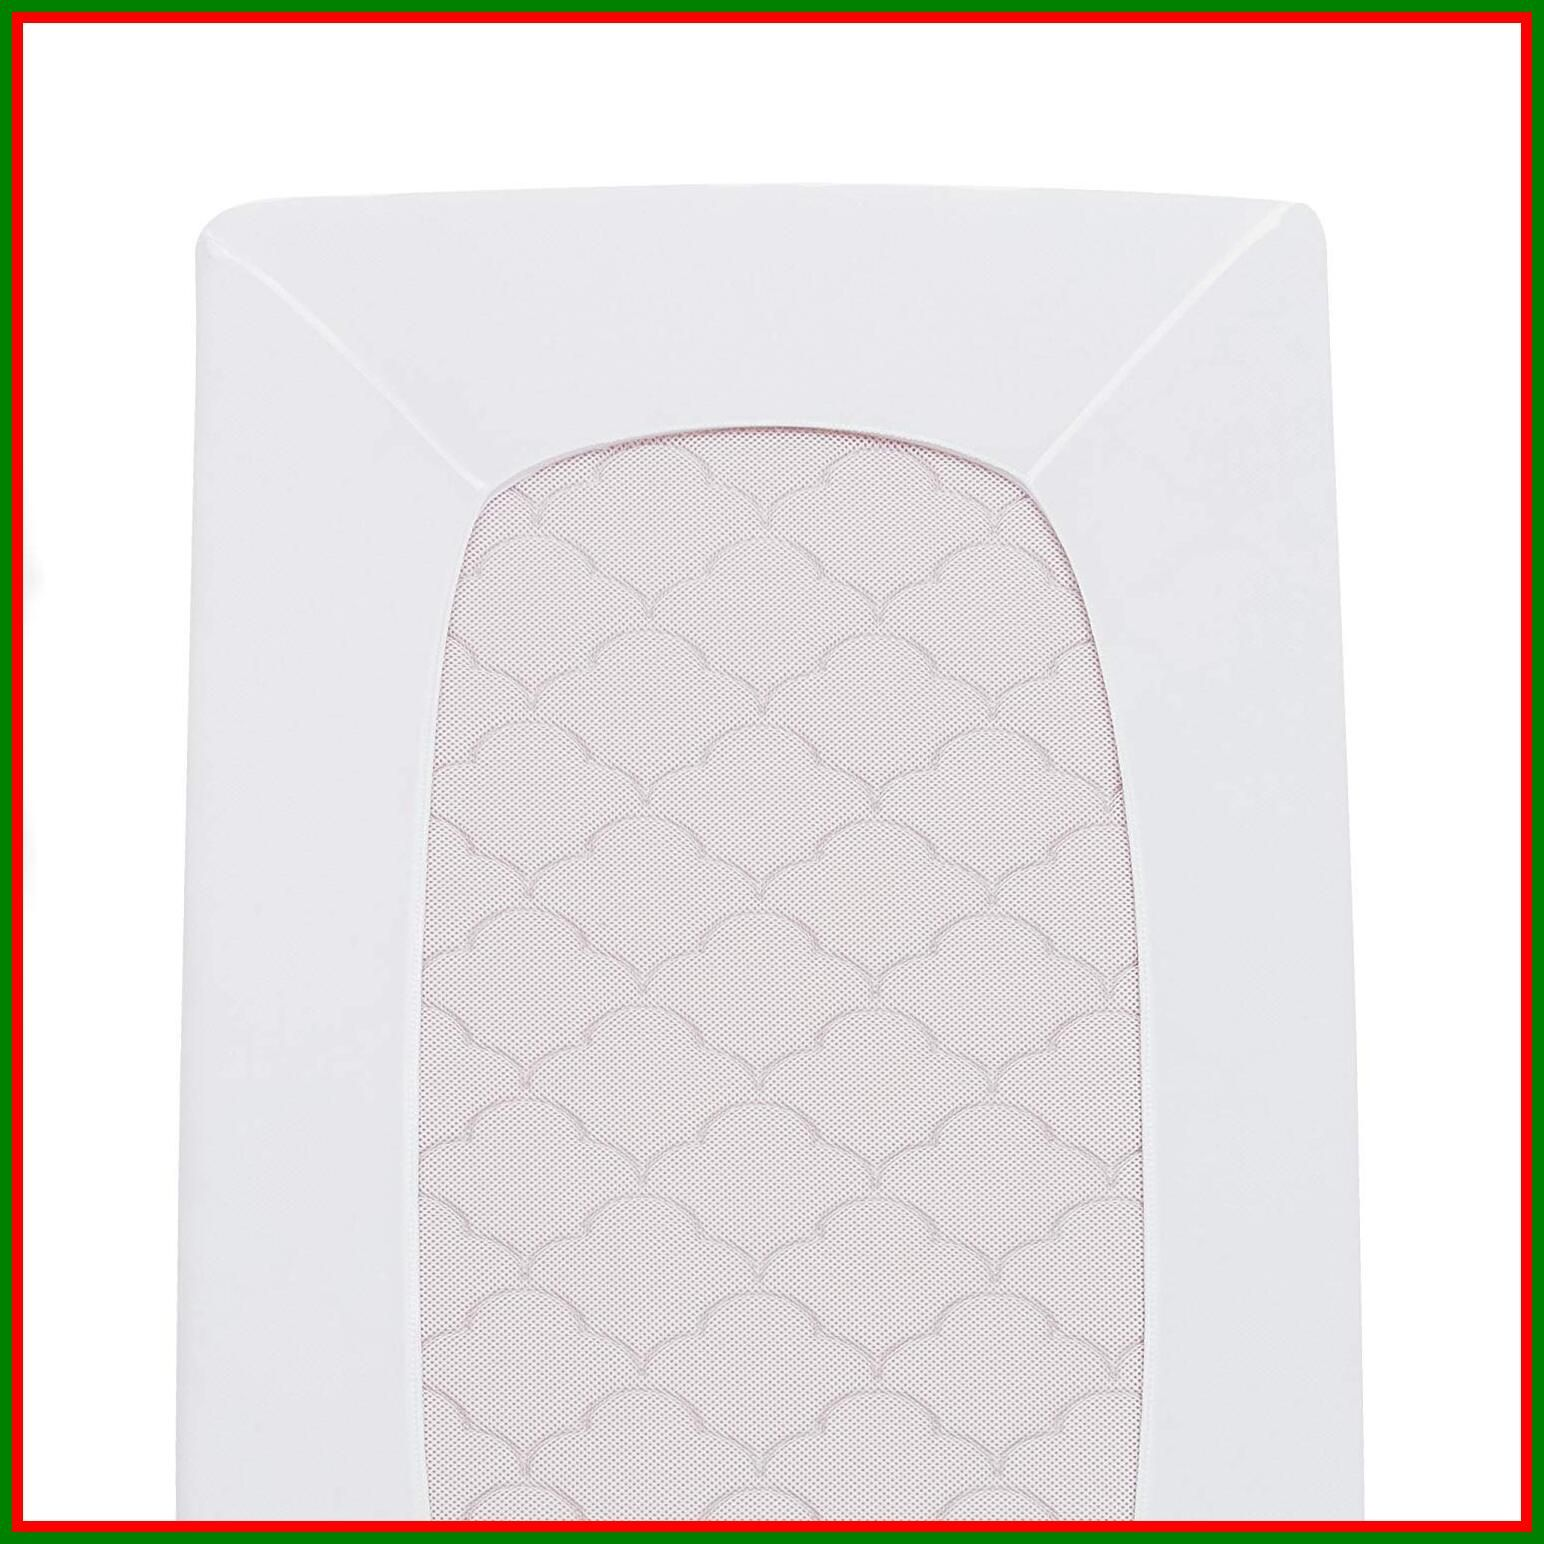 111 Reference Of Newton Baby Mattress Pad In 2020 Crib Mattress Pad Baby Crib Mattress Baby Mattress